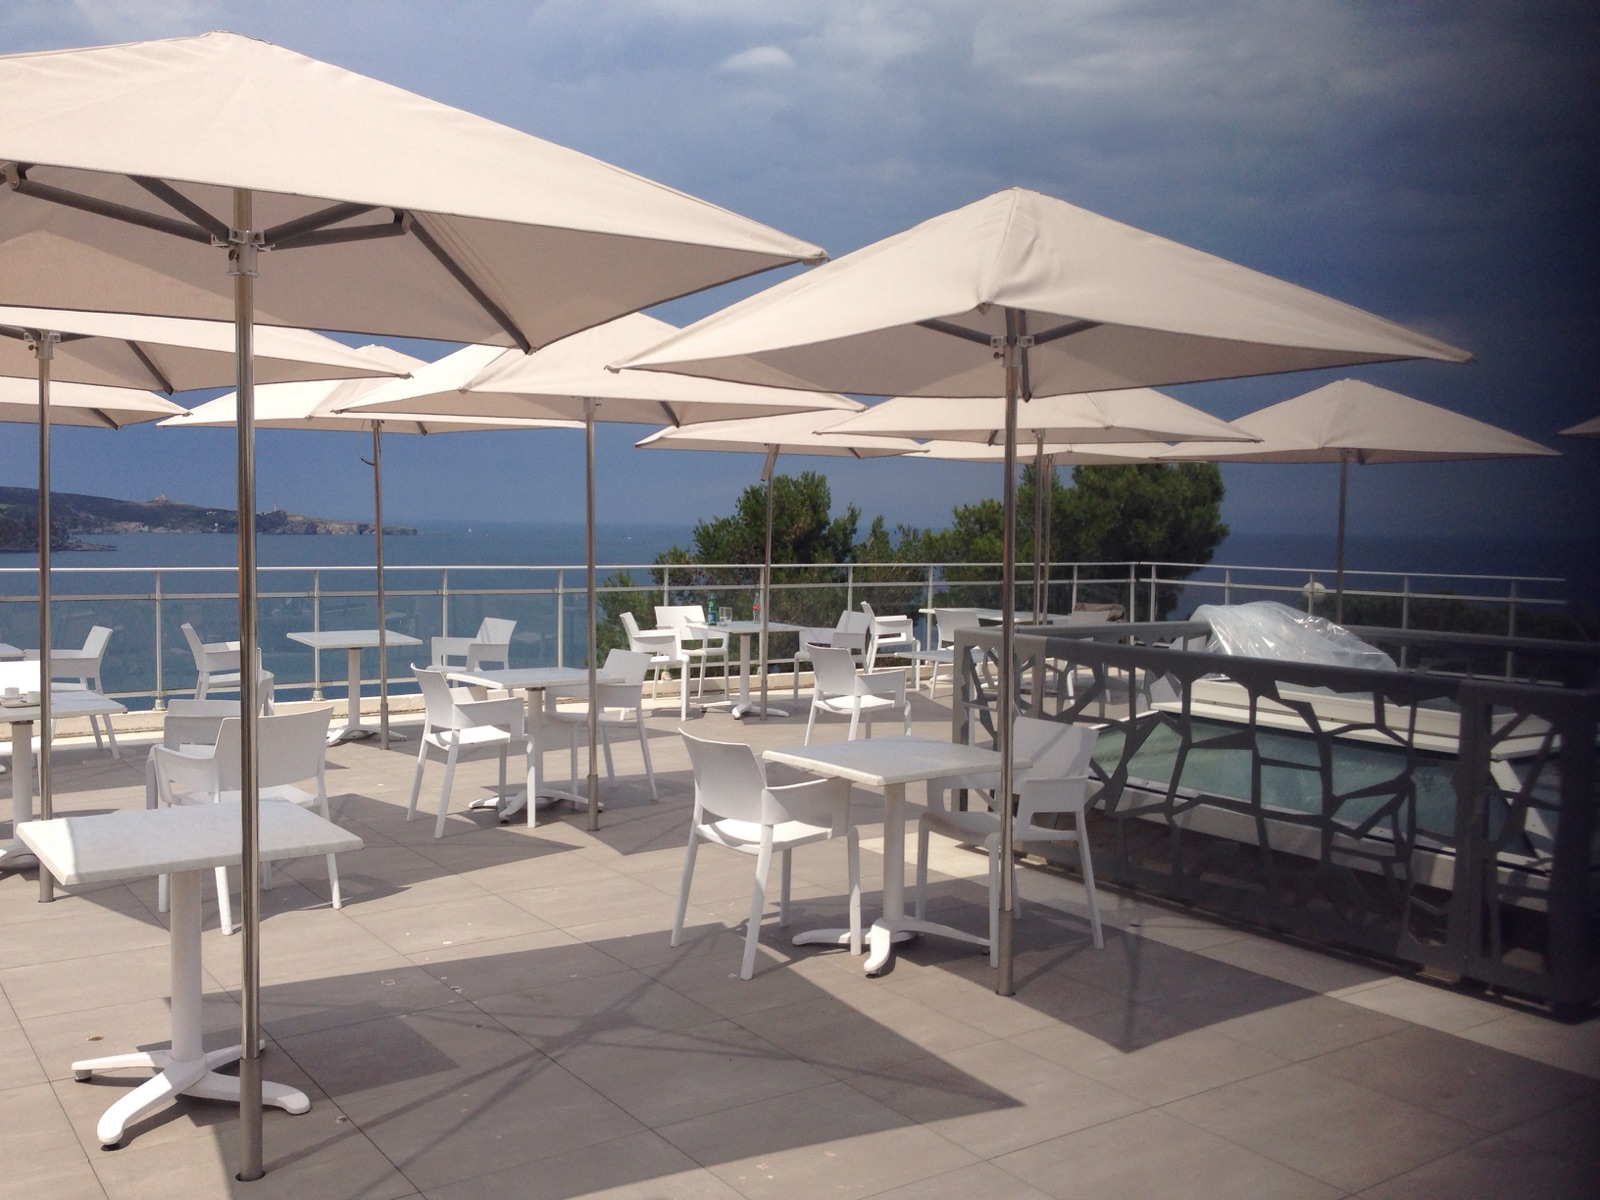 Terrace Sunshades For Restaurants